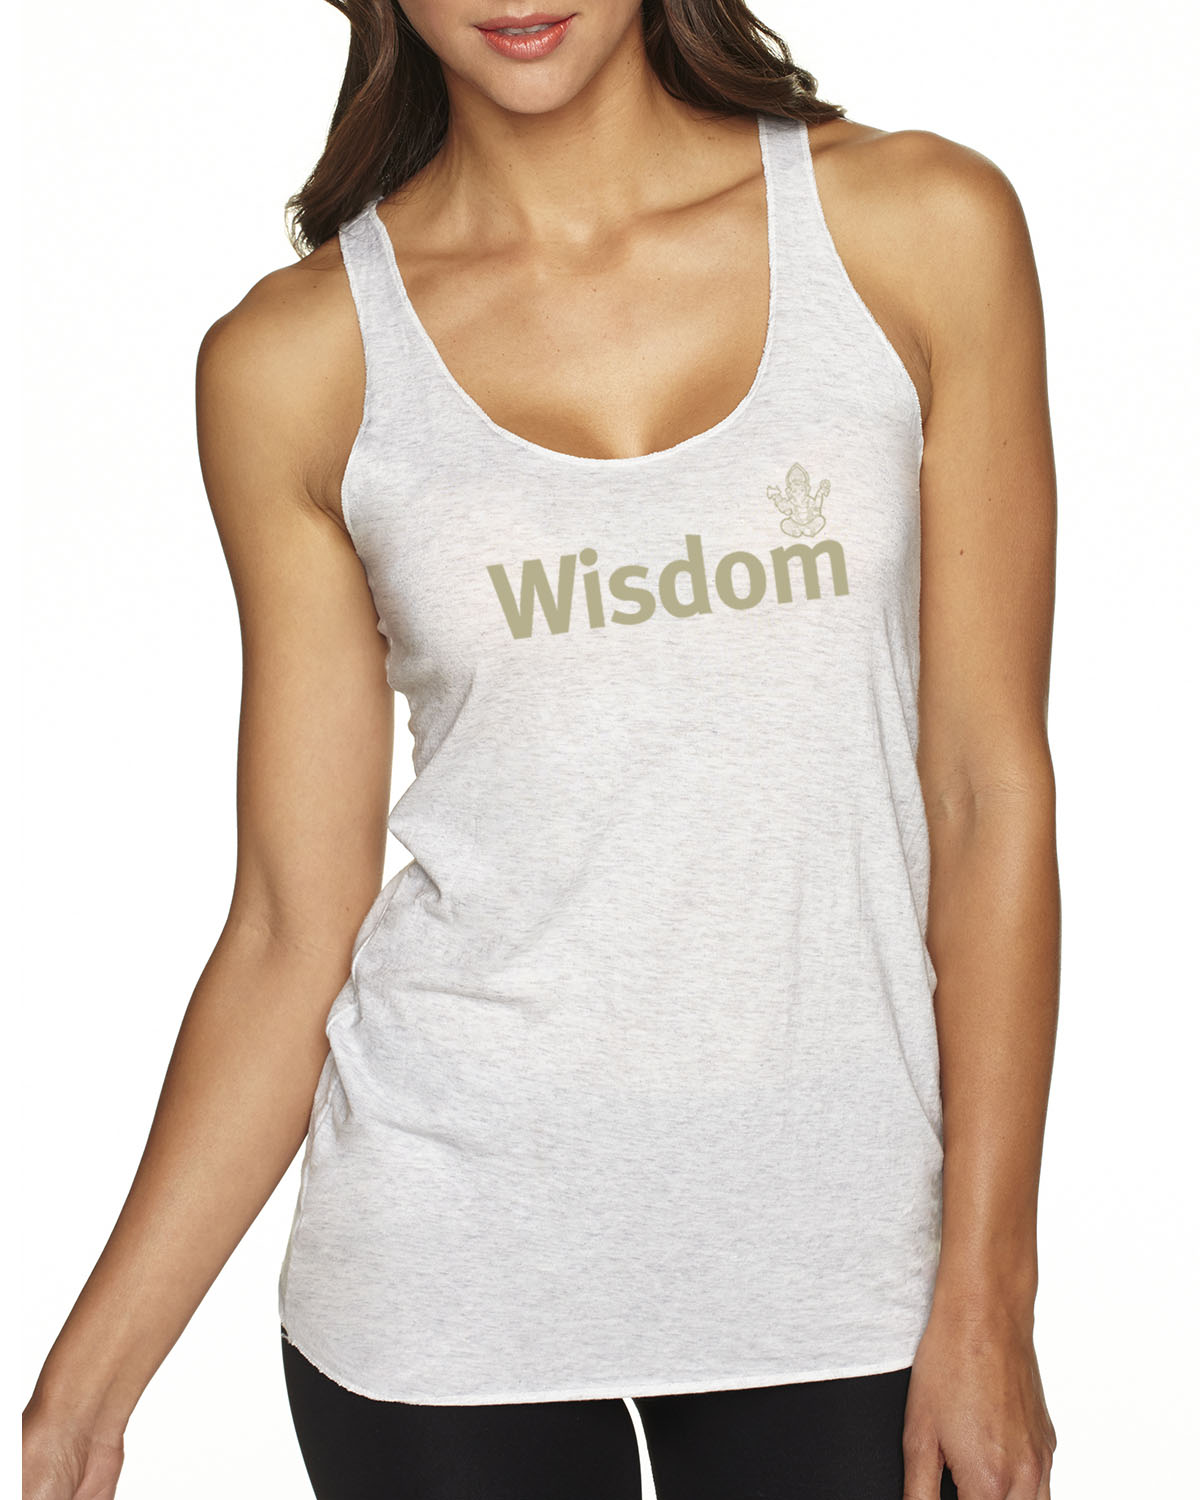 Women's Tri-blend Wisdom Tank Top (Vintage White)